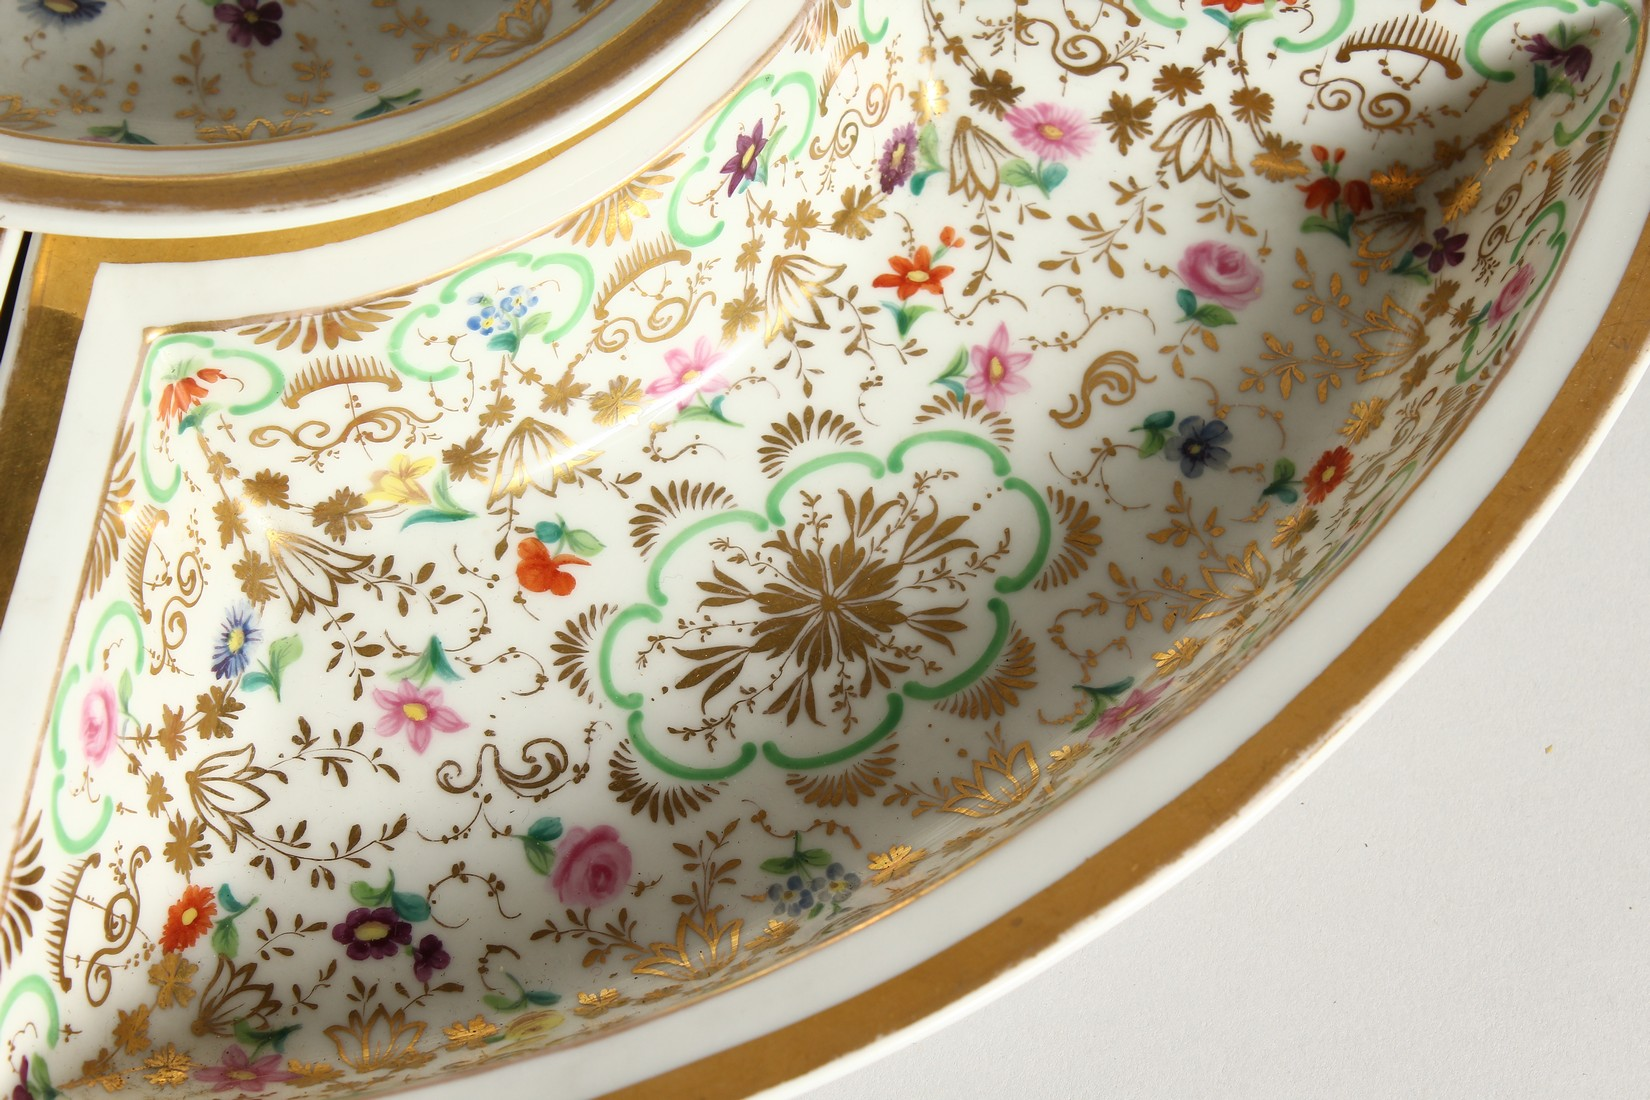 A K. P. M. PORCELAIN CIRCULAR BOWL with gilt decoration and painted with flowers. 7ins diameter - Image 6 of 9